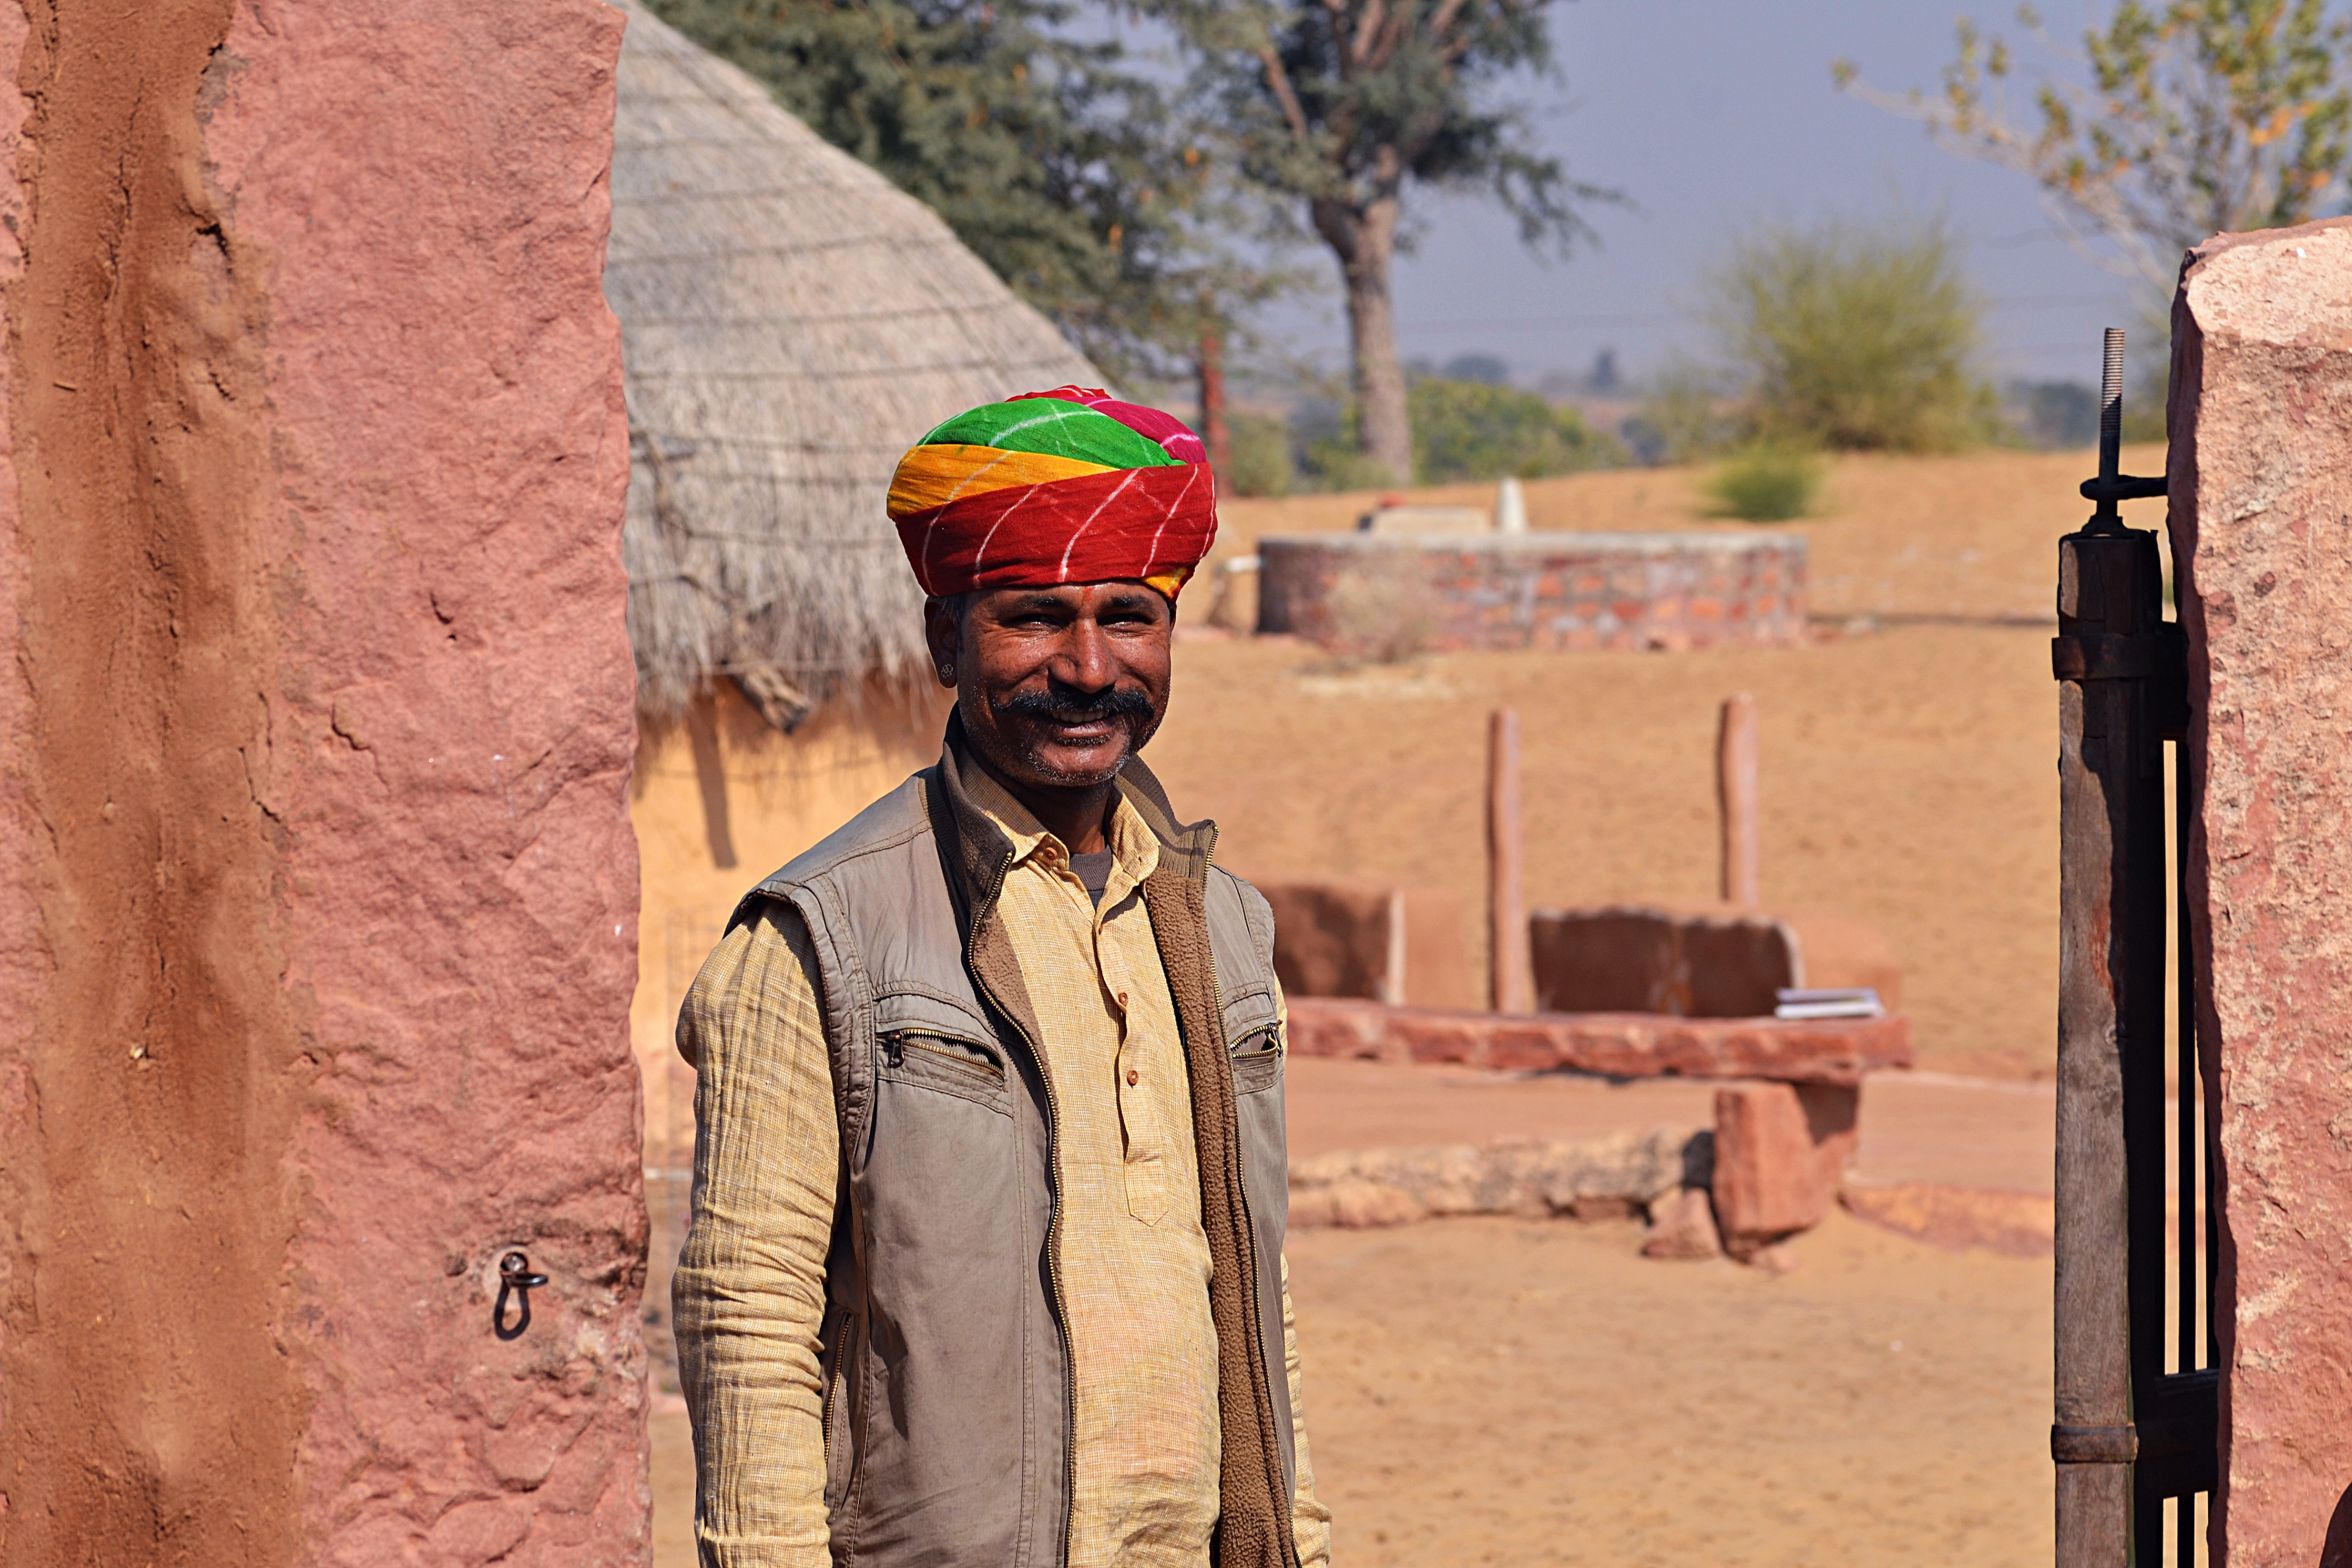 Gemar stands before a jhumpa hut, part of Hacra Dhani, a homestay and tourism social enterprise he founded in the Thar desert.